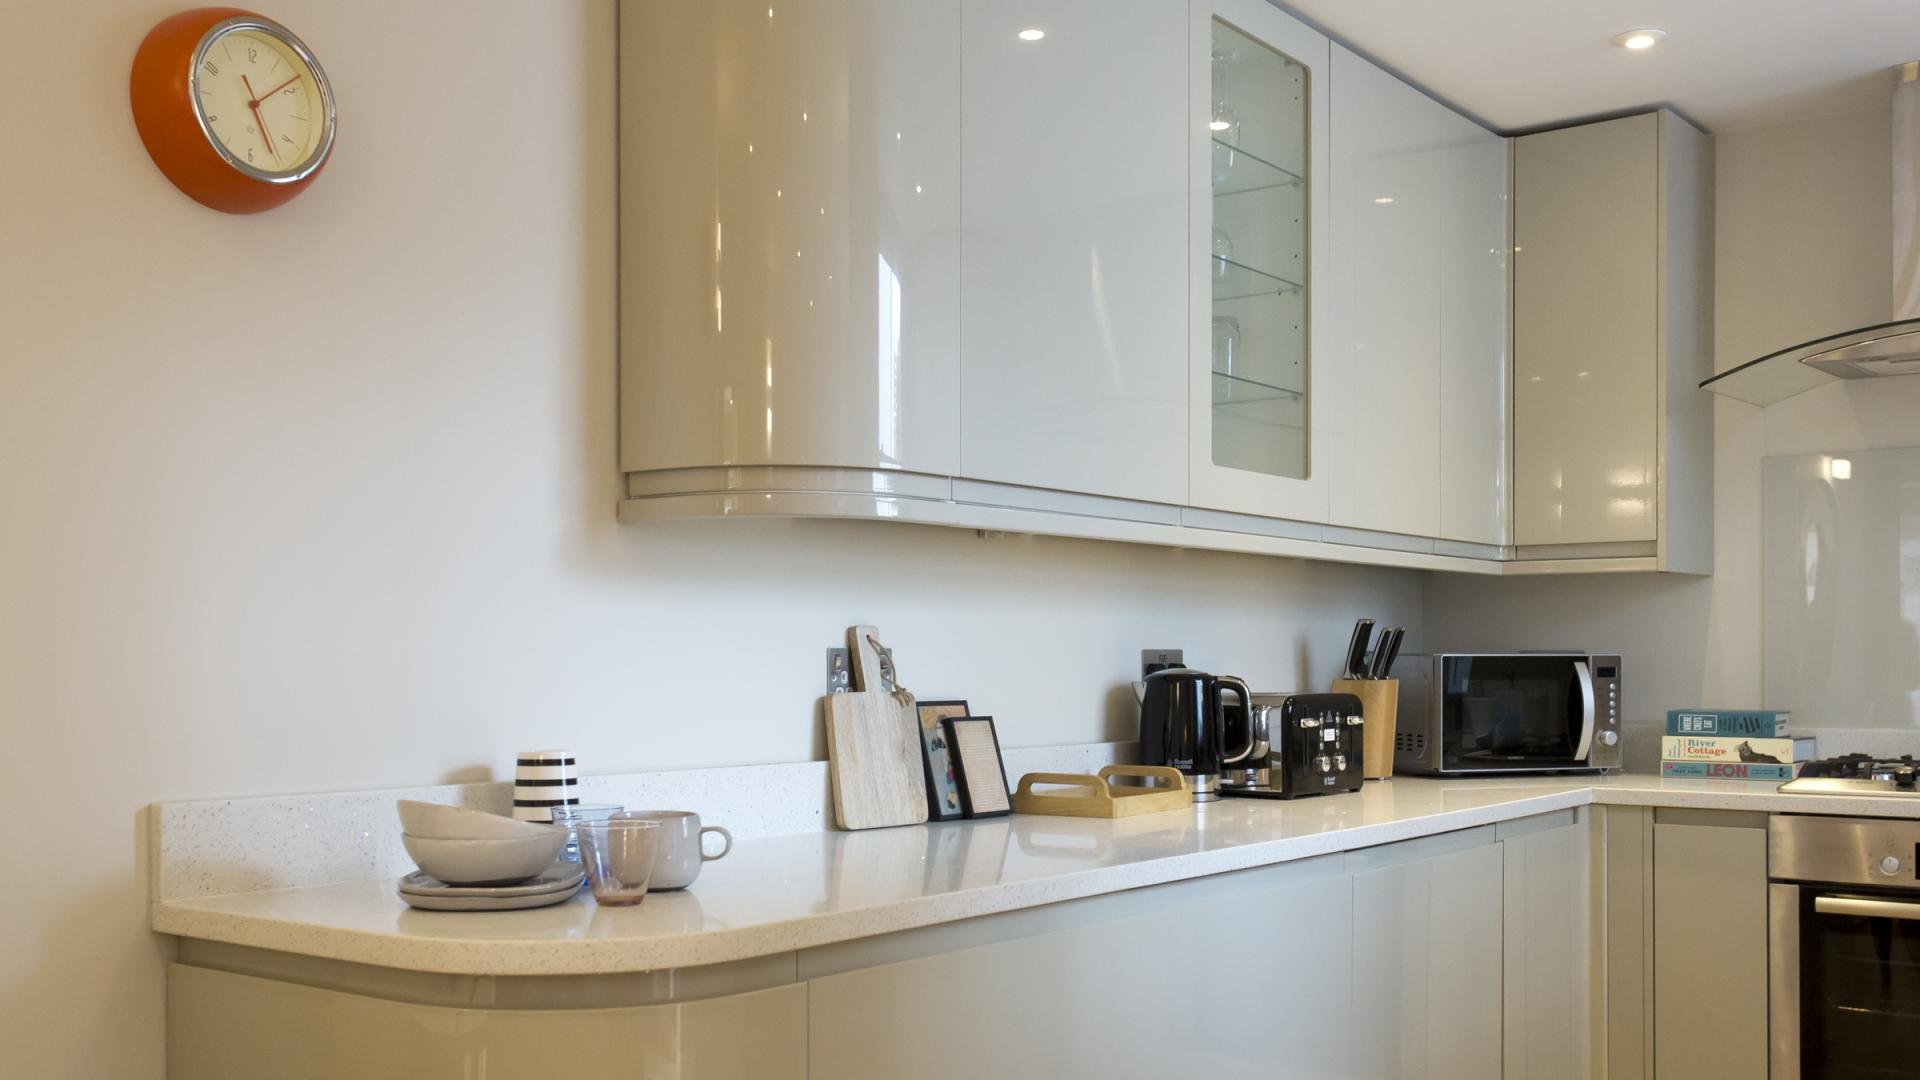 Kitchen facilities at Byrne Garden 2 Apartment